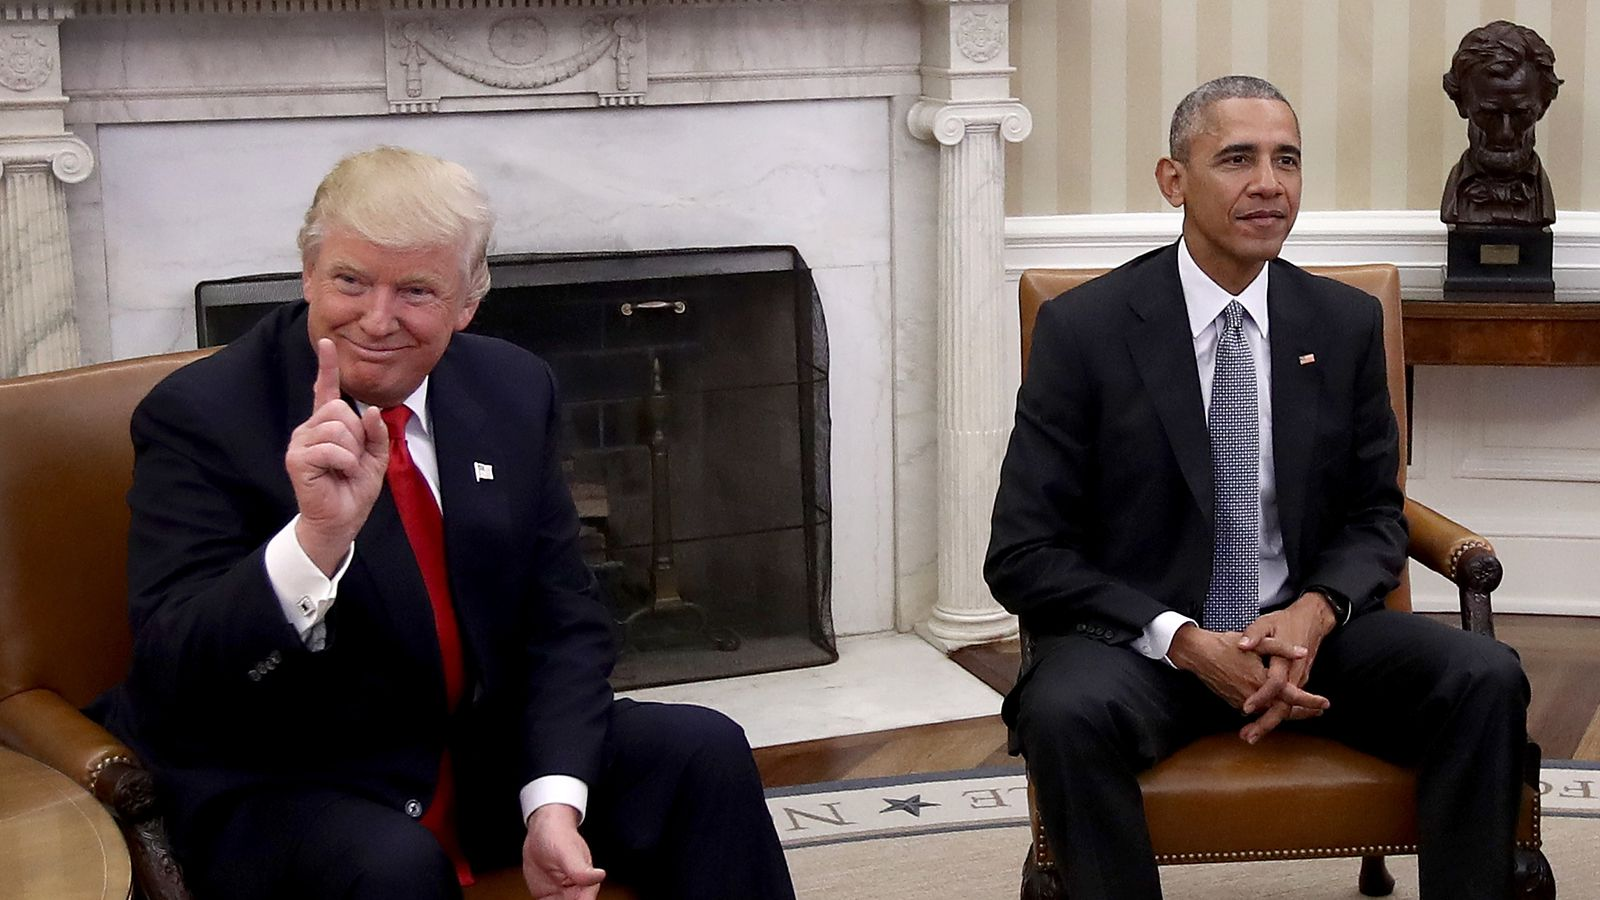 Barack obama and donald trump on their favorite books vox for Donald trump favorite books